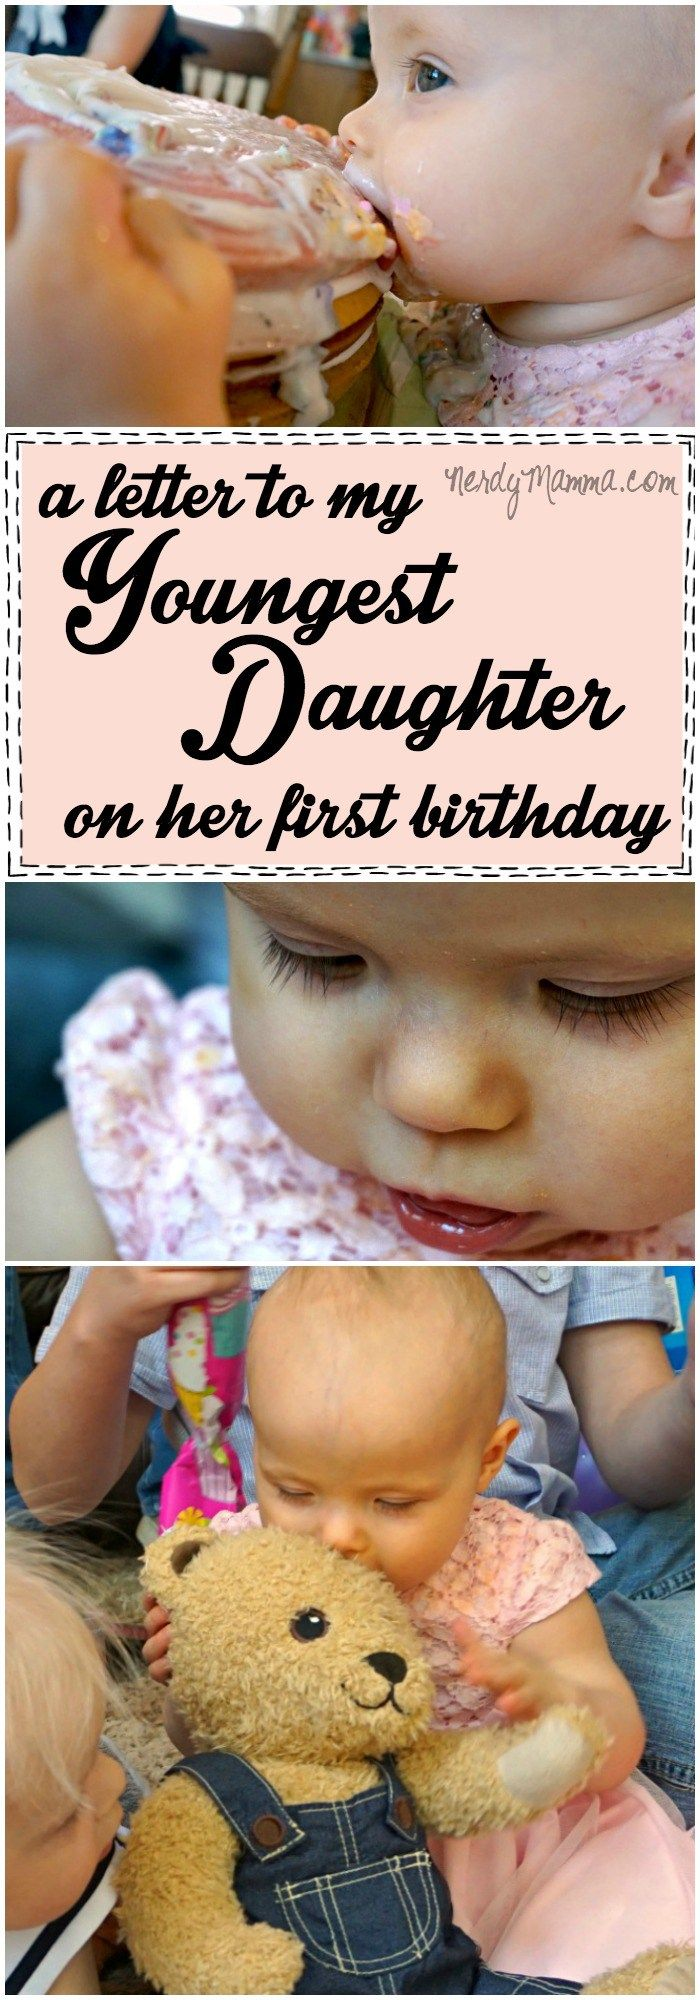 I love this letter to her youngest daughter...so sweet. It made me cry.